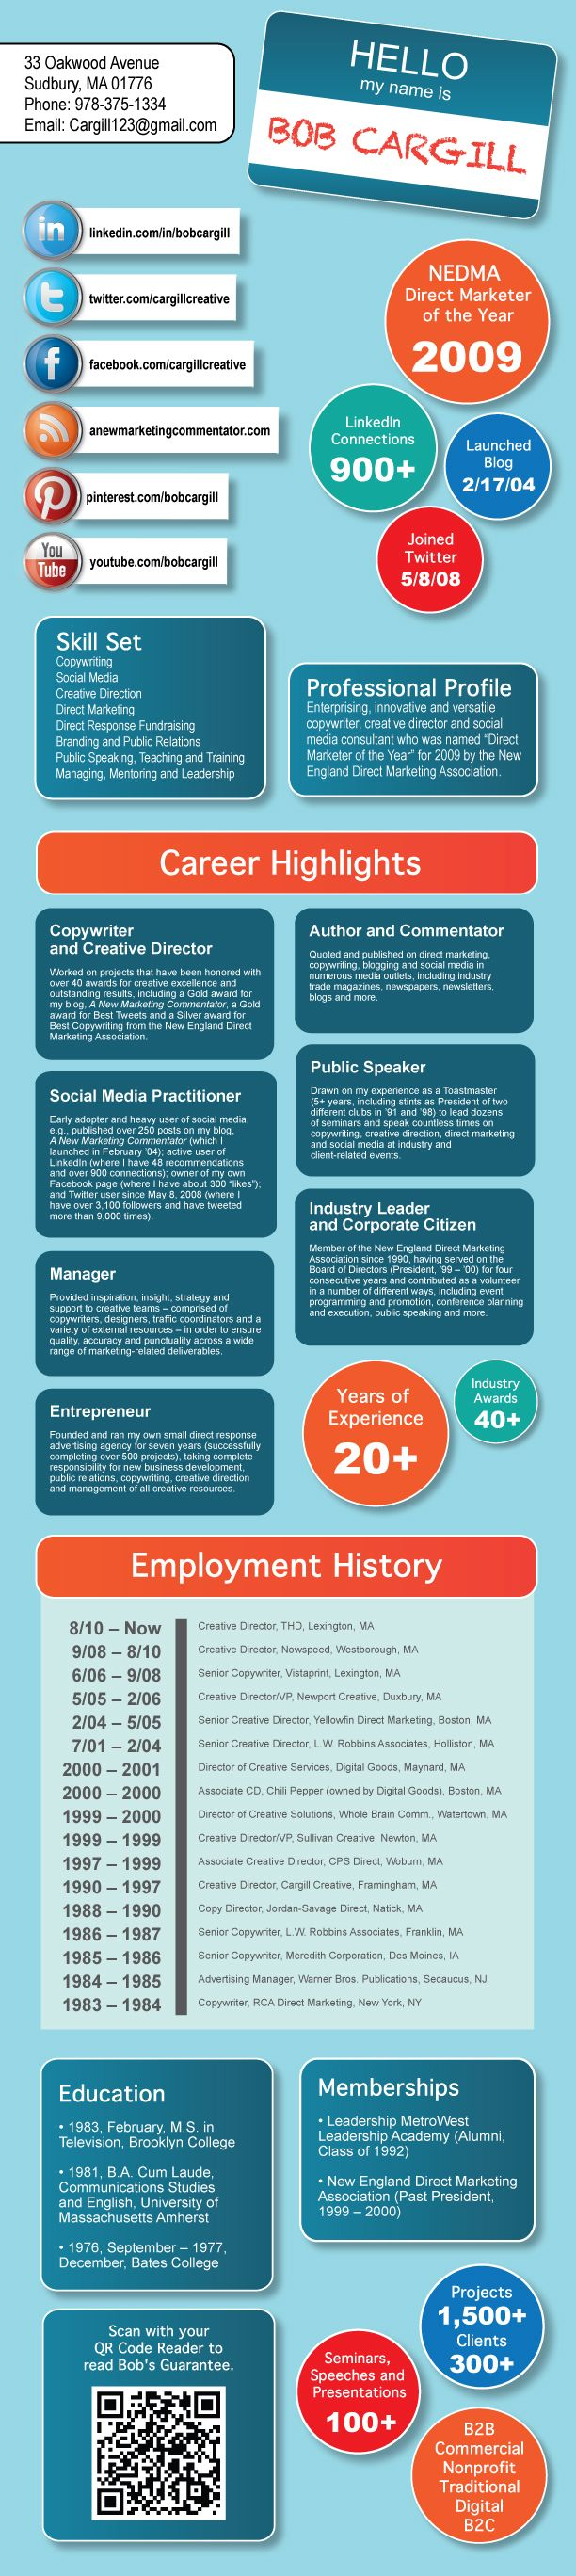 bobs infographic resume